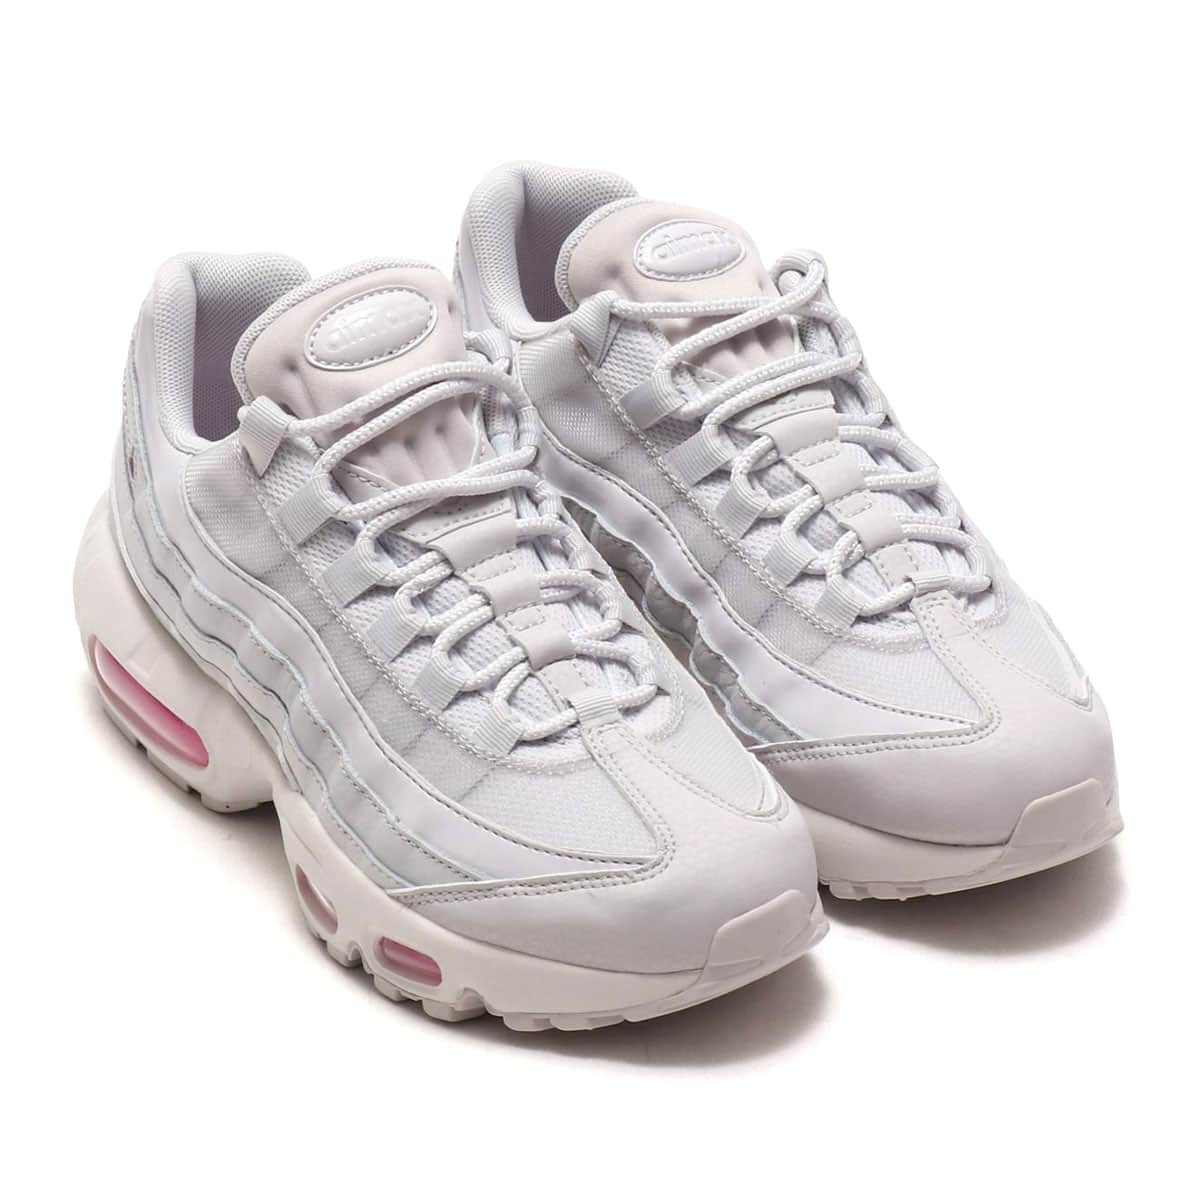 NIKE WMNS AIR MAX 95 SE VST GREY/PSYCHC PNK-SMMT WHITE 19SU-S_photo_large